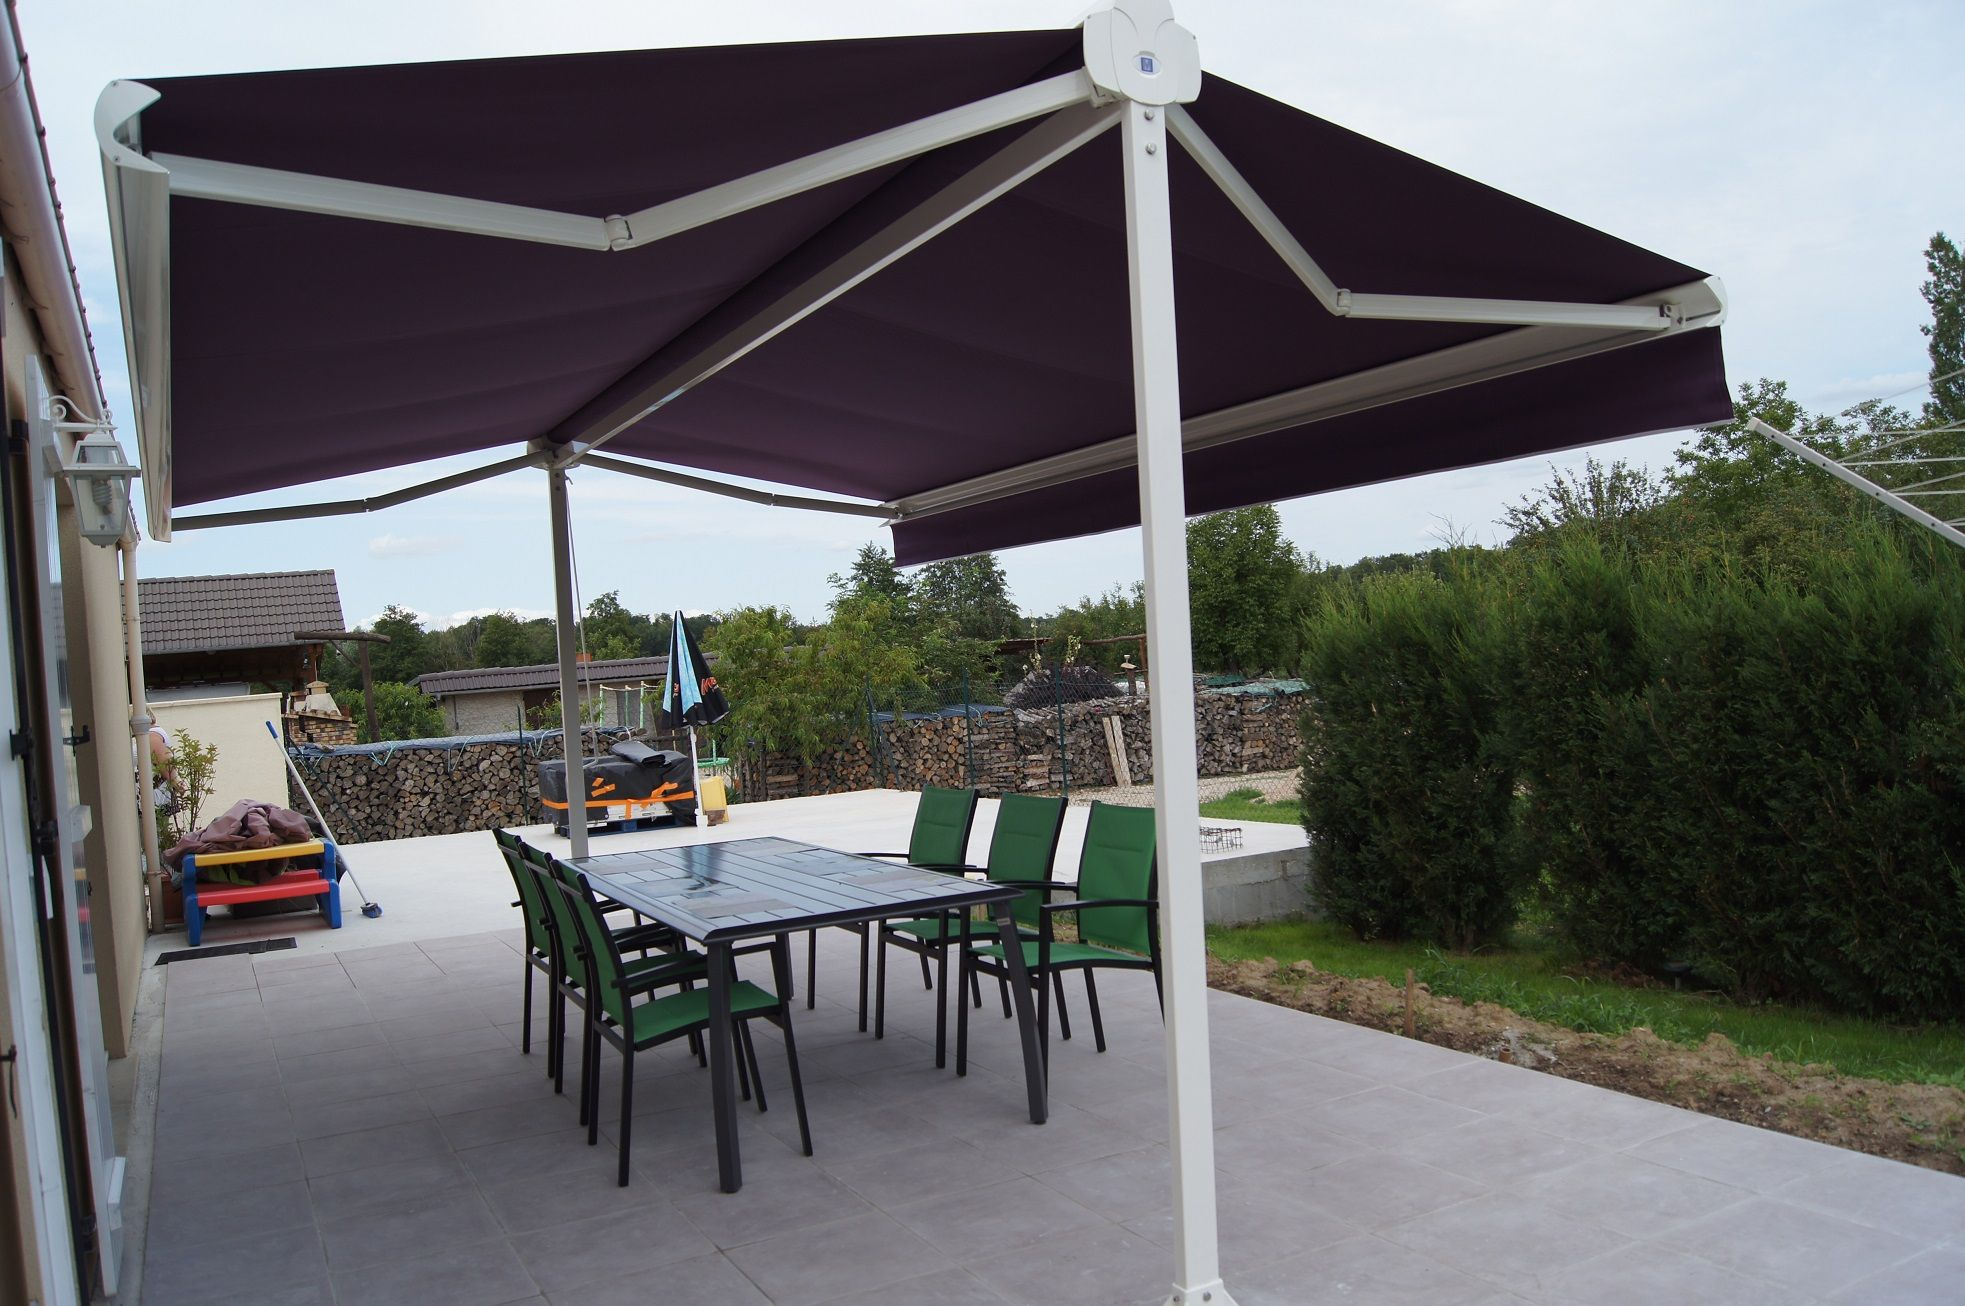 Store Double Pente Http Www Orion Menuiseries Com Stores Banne Store Terrasse Htm Store Terrasse Do Store Double Pente Stores Exterieurs Idees De Patio